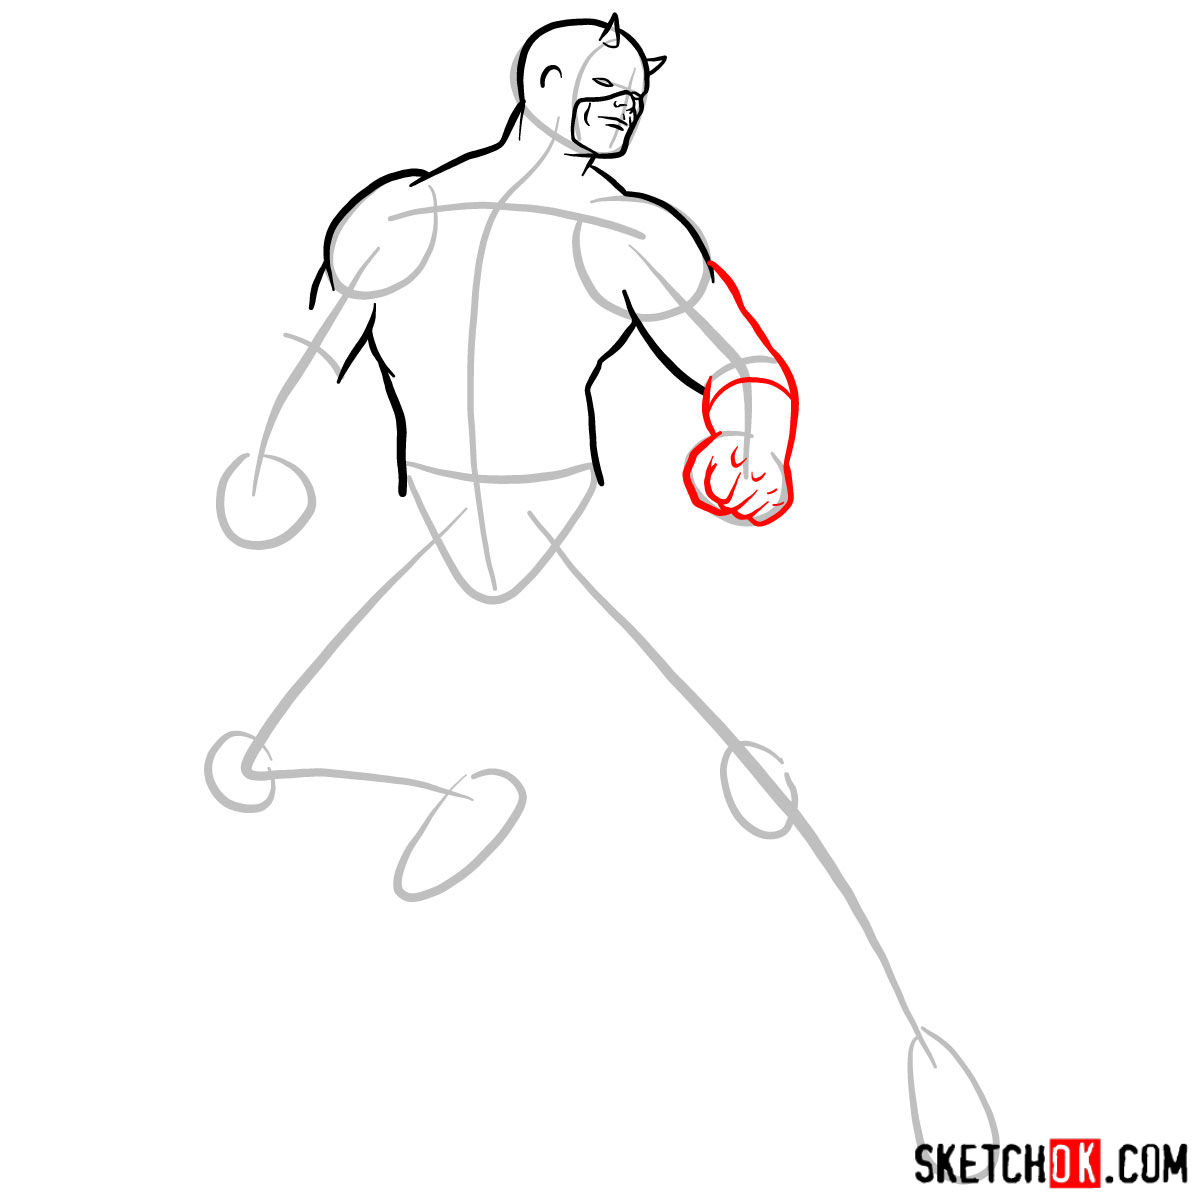 How to draw Daredevil from Marvel - 